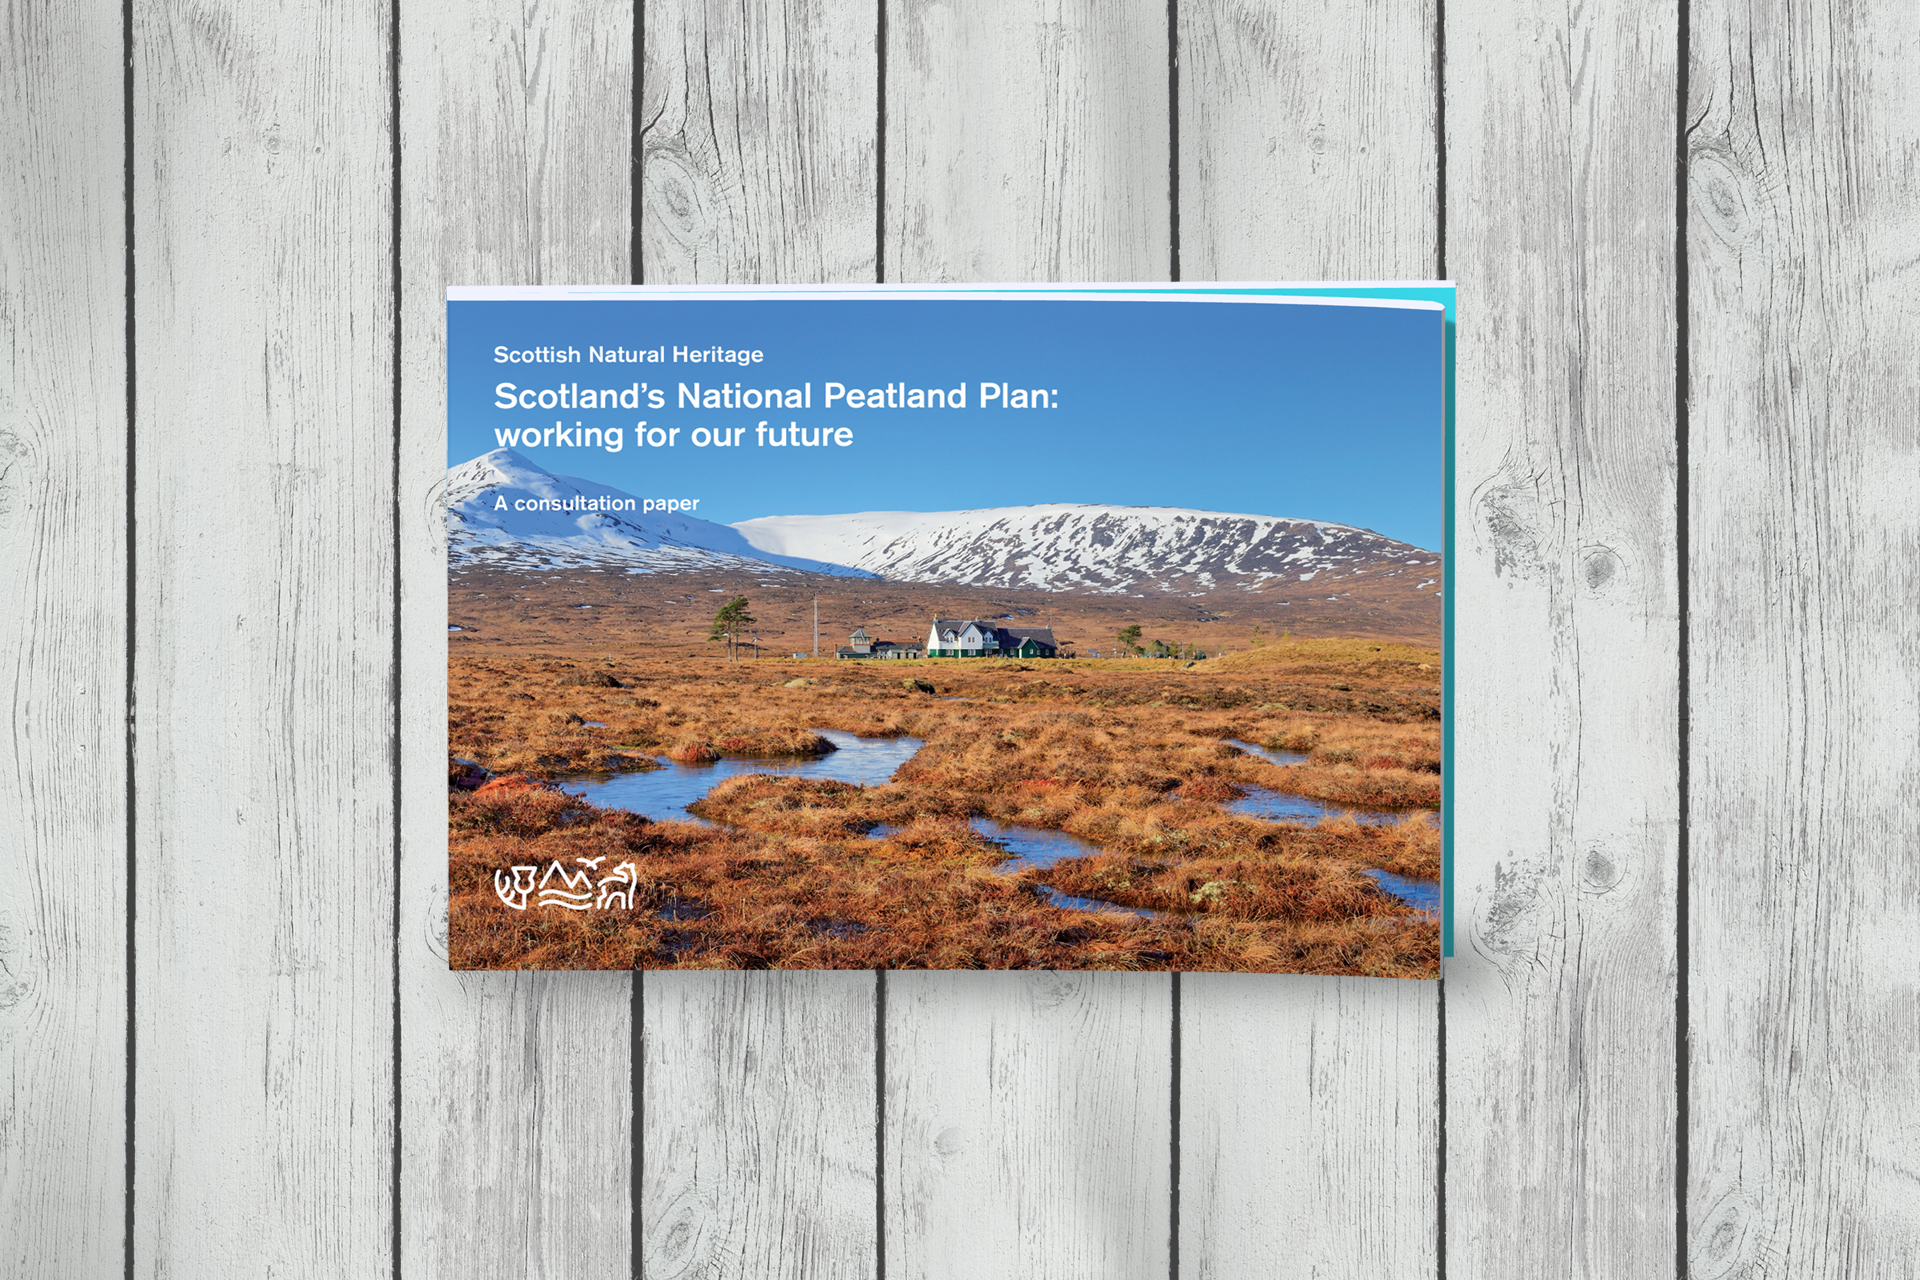 Scotland's National Peatland Plan report